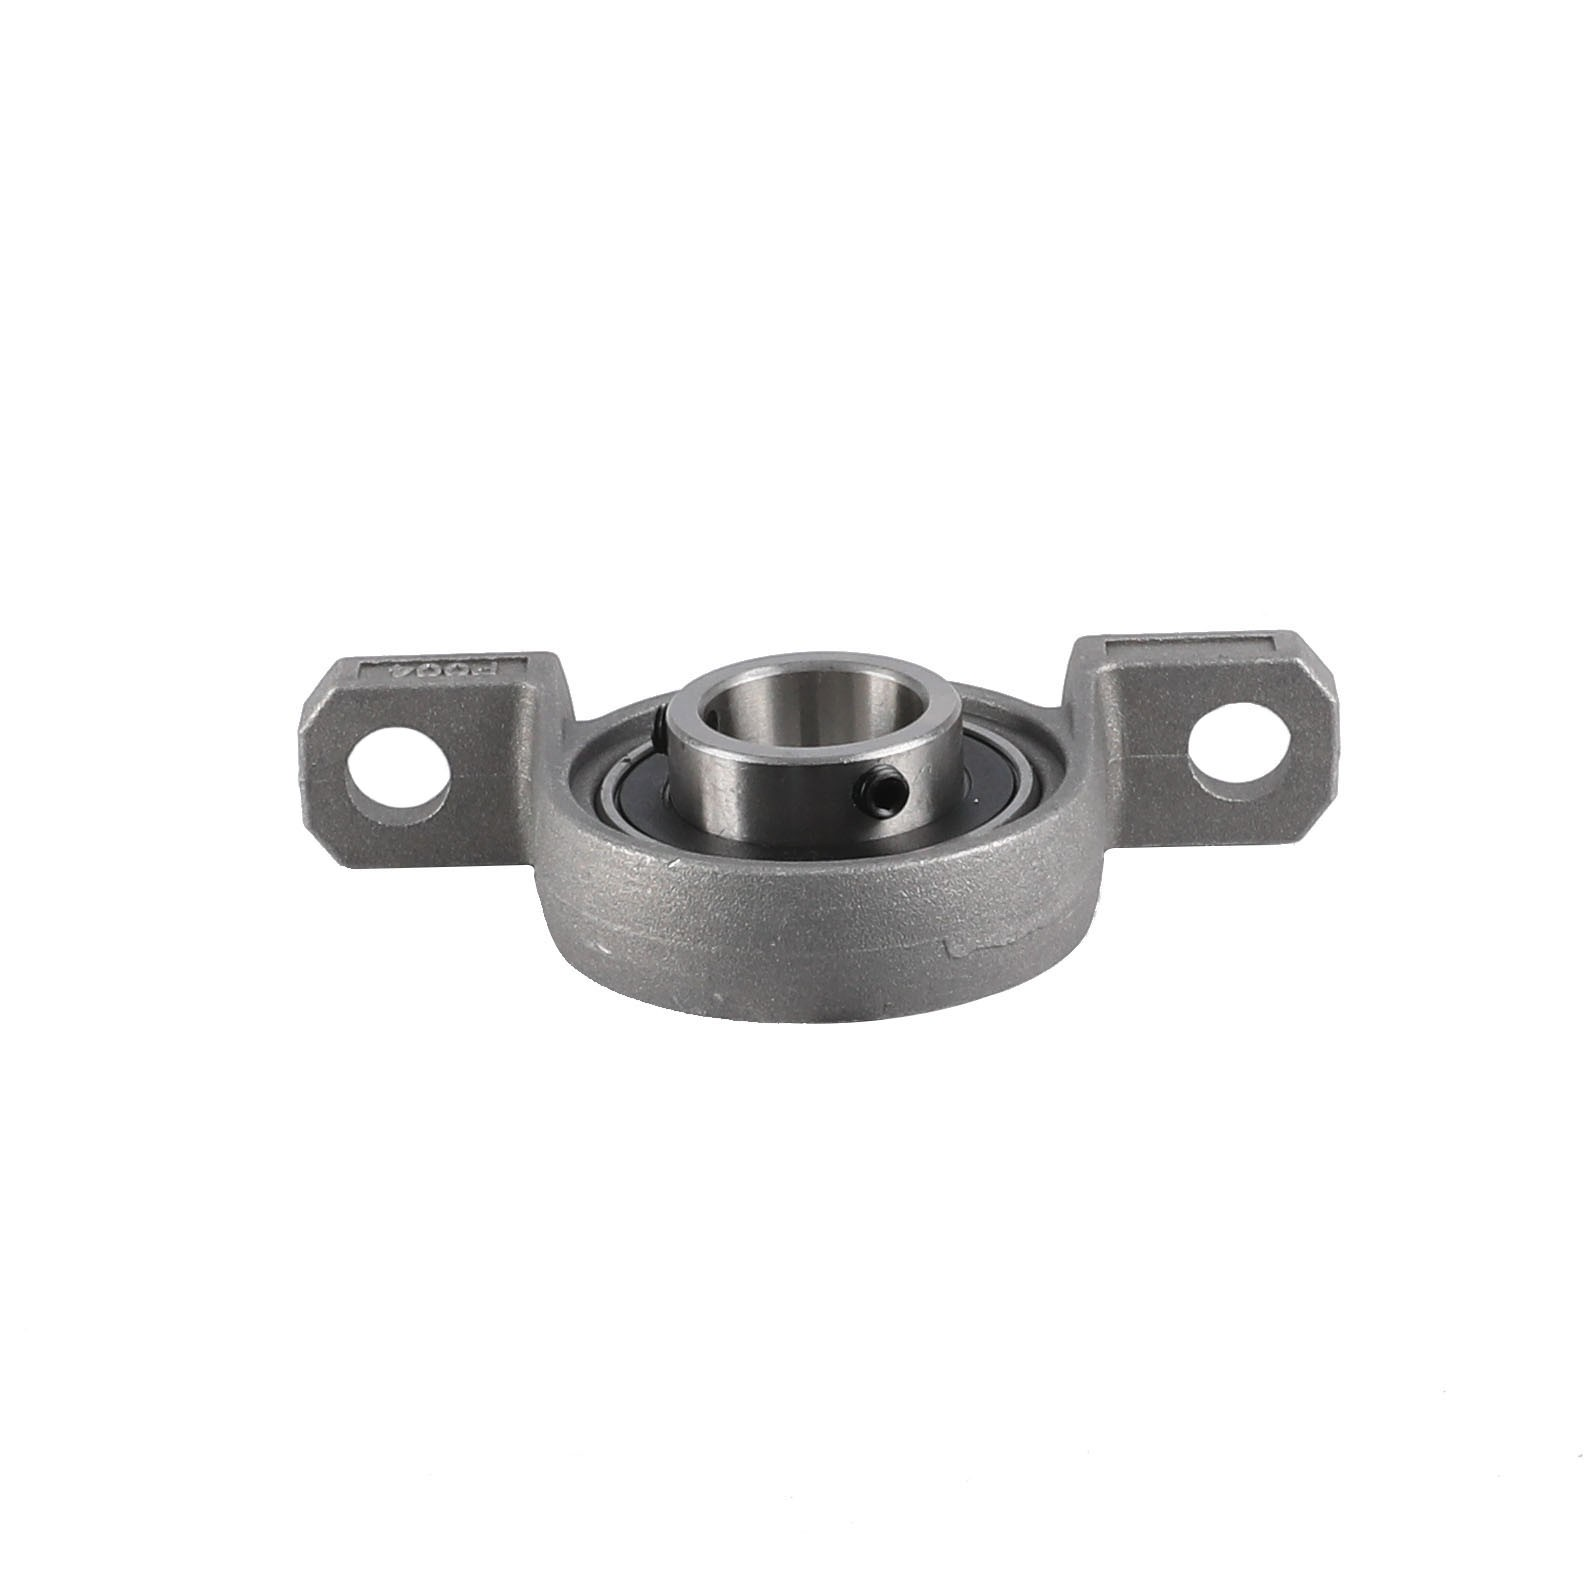 TDPRO 4 Stud 78mm Bolt Space Front Wheel Rim Hub with Bearing Assembly /& Steering Knuckle for 125cc 150cc Quad Buggy ATV UTV